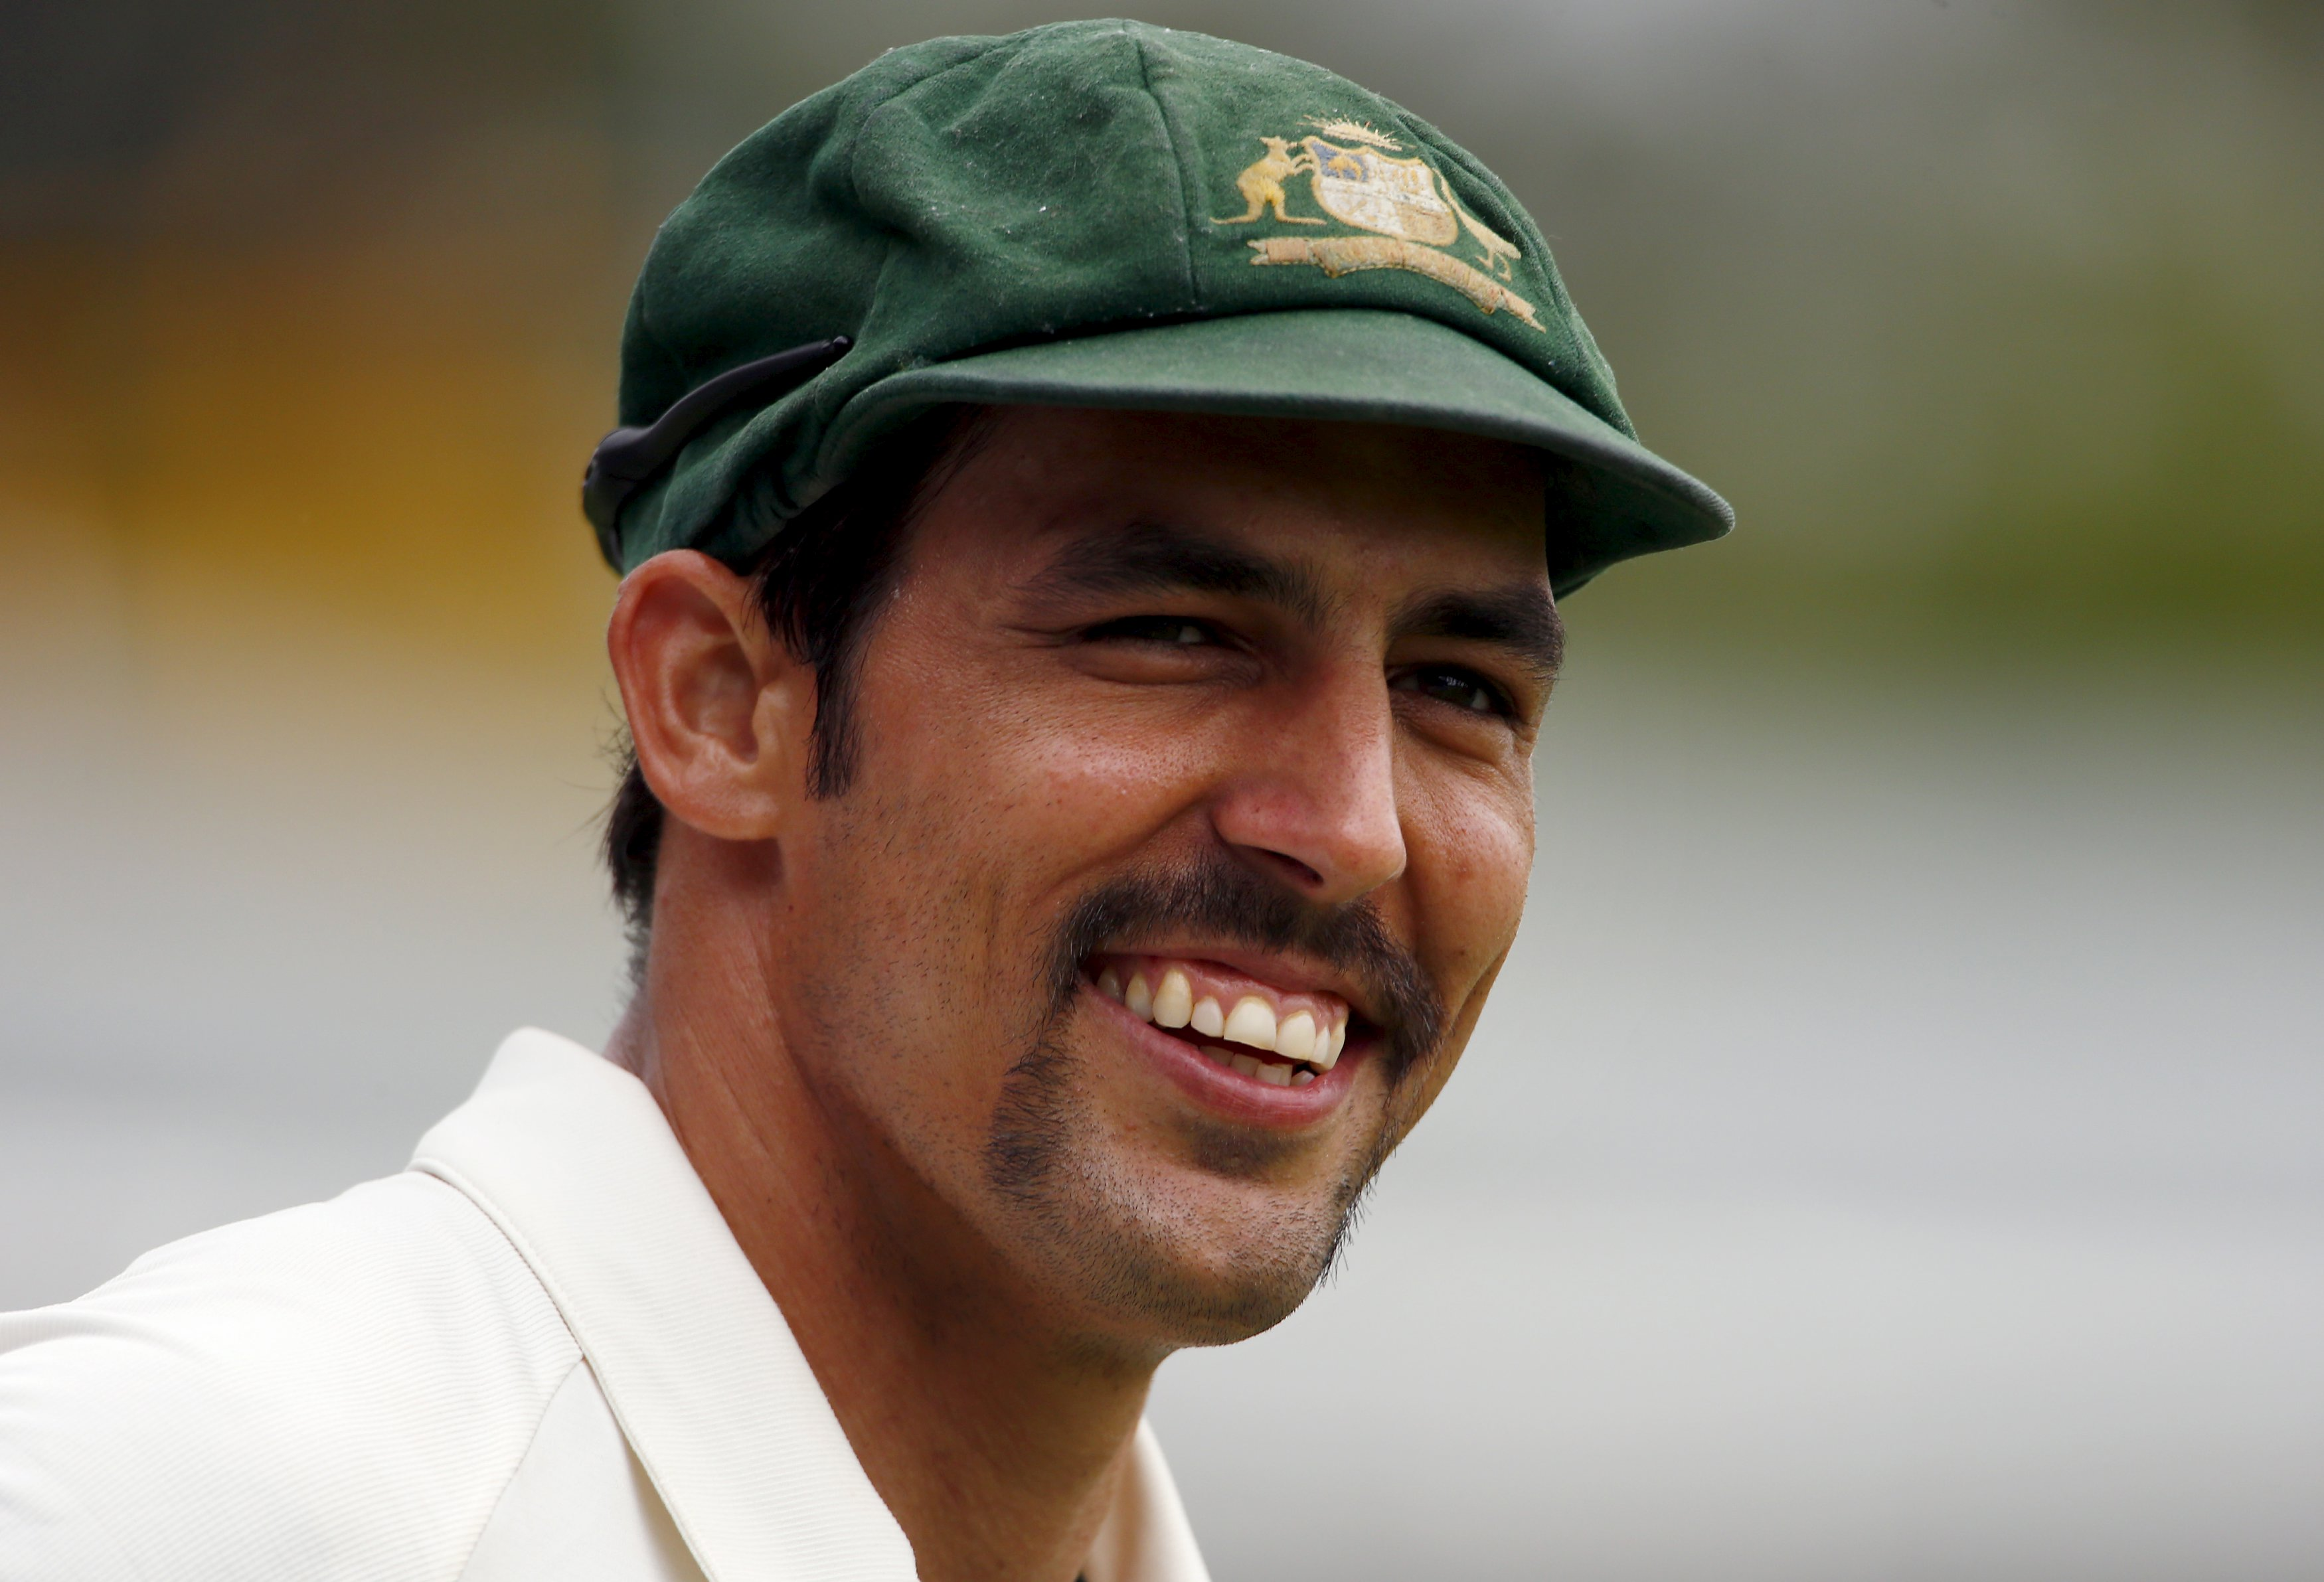 Australia's Mitchell Johnson smiles towards a member of the crowd as he fields near the boundary during the fifth day of the second cricket test match against New Zealand at the WACA ground in Perth, November 17, 2015. Photo: Reuters